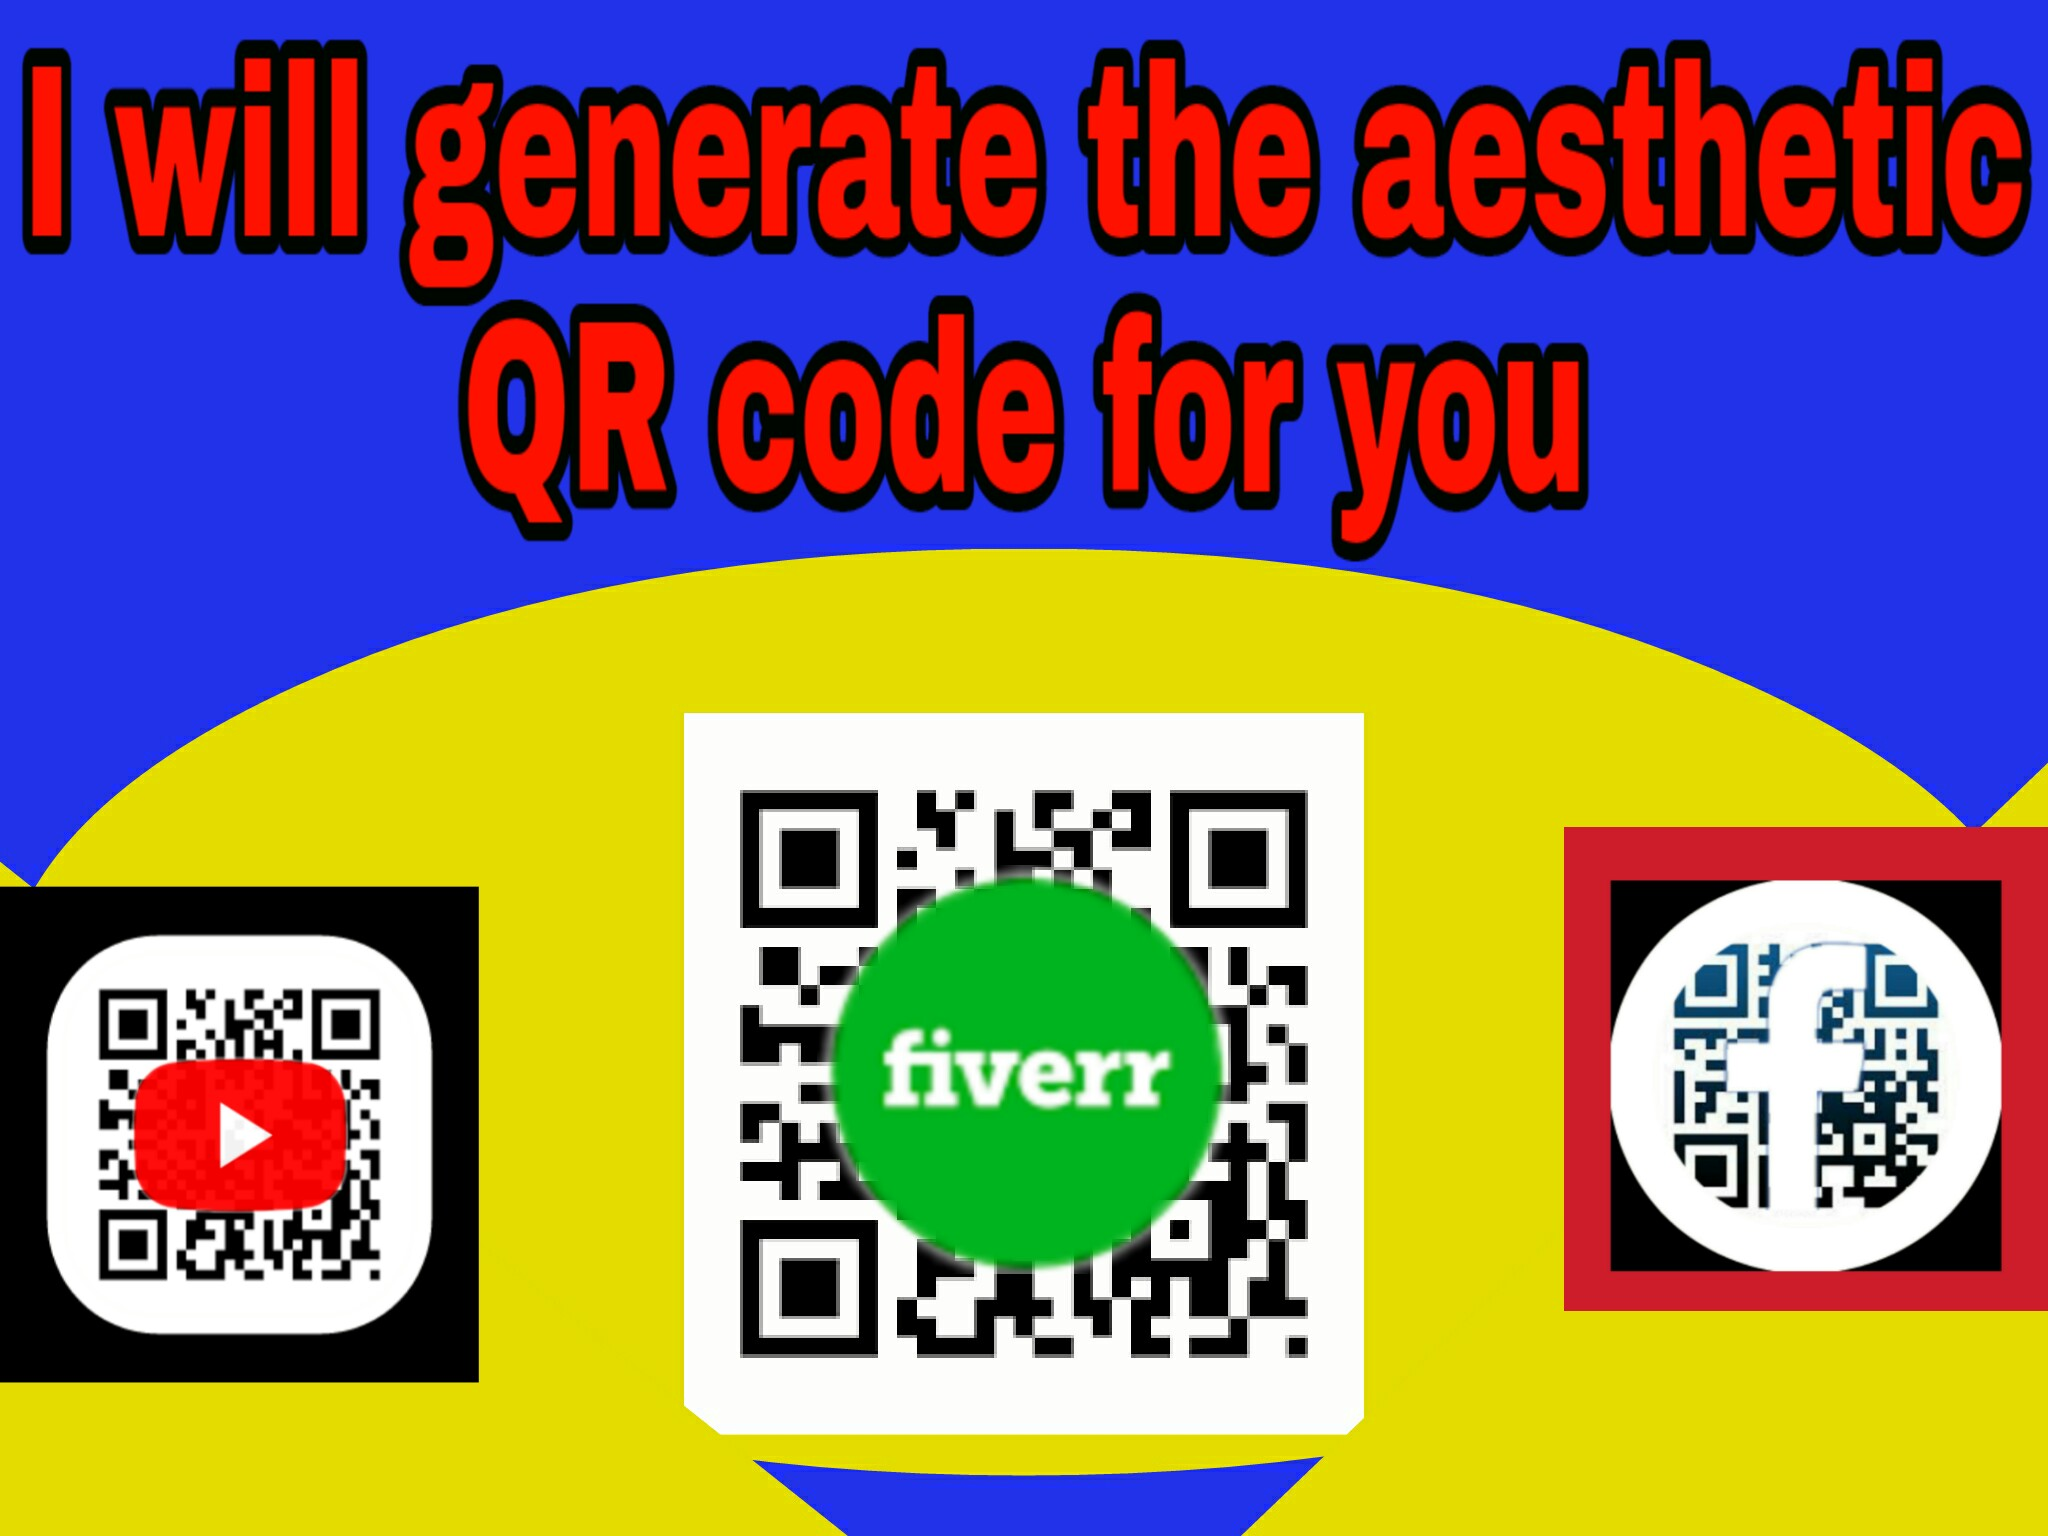 I will generate the aesthetic QR code for you